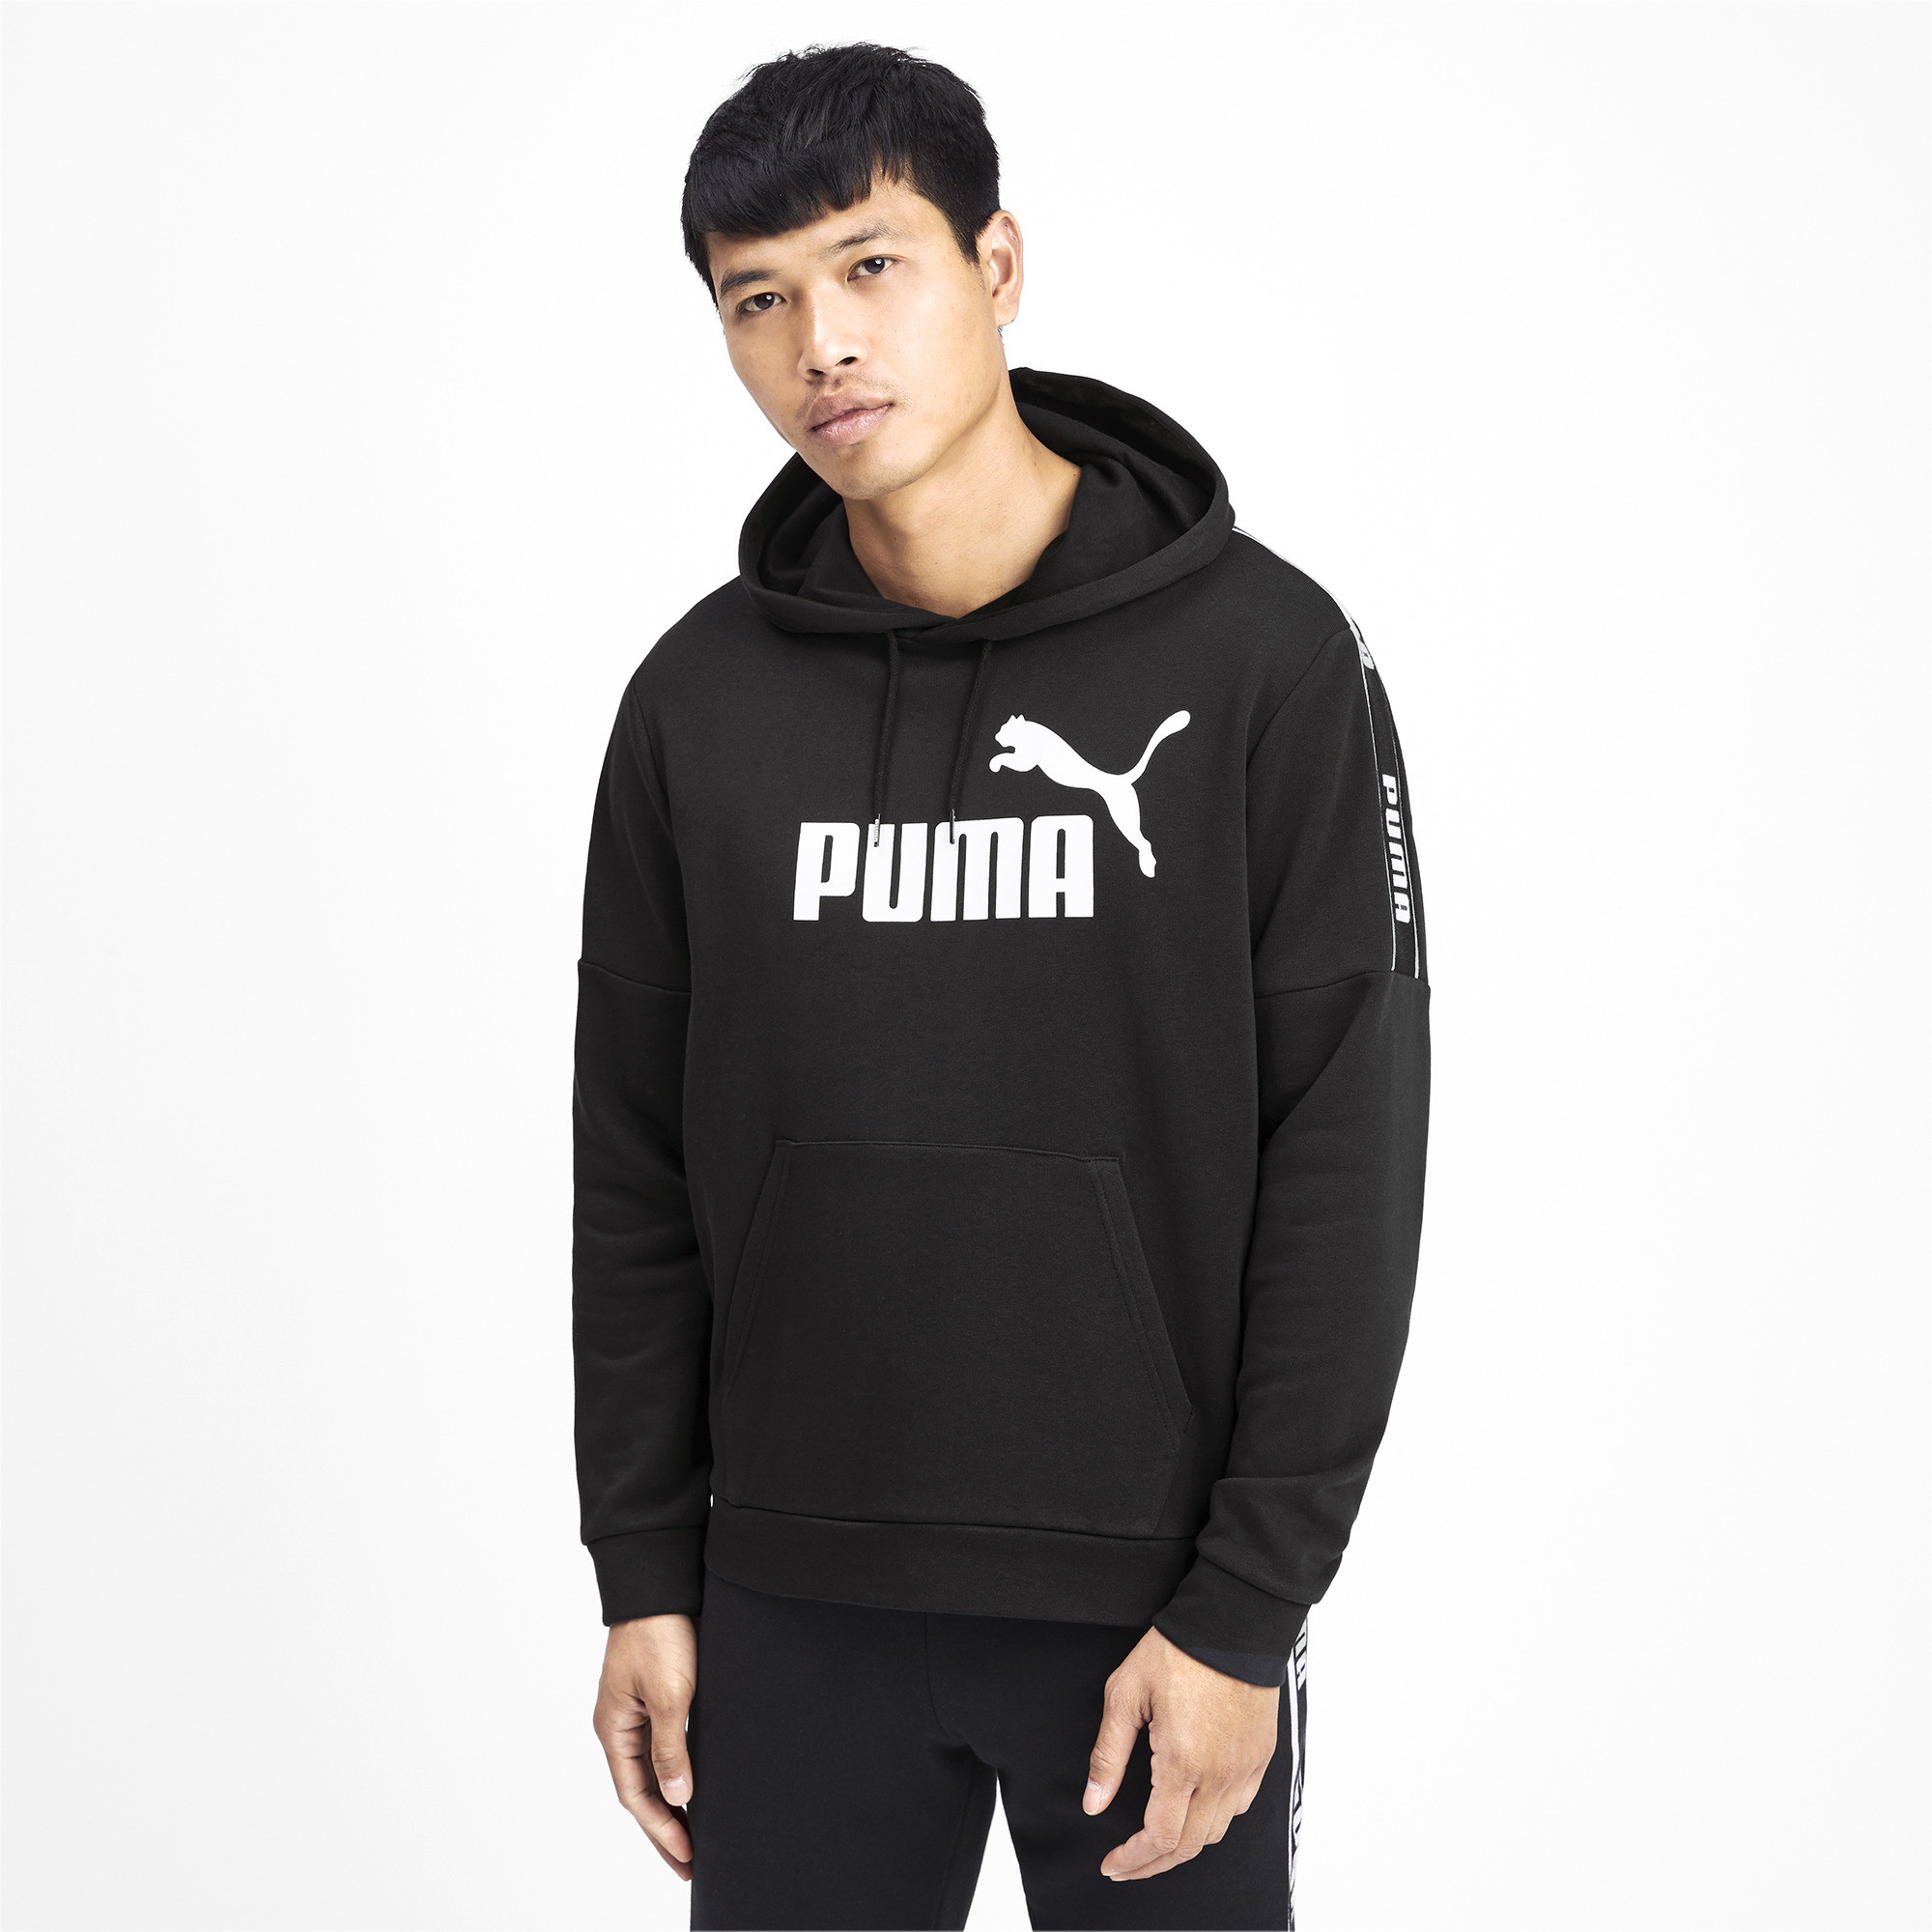 PUMA-Amplified-Men-039-s-Hoodie-Men-Sweat-Basics thumbnail 9